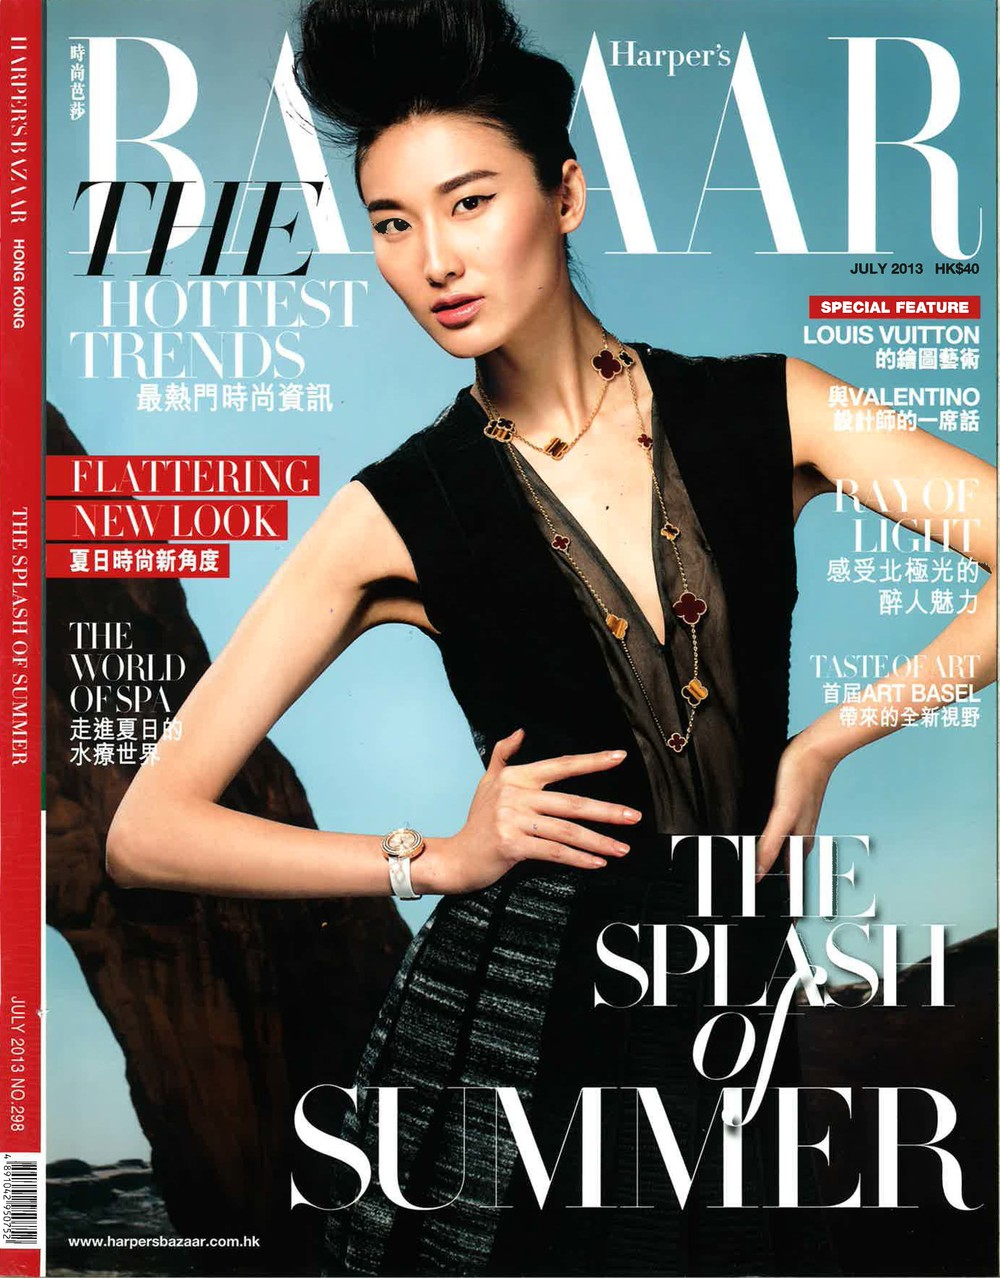 Harpers BAZAAR_2013 Jul_Cover.jpg